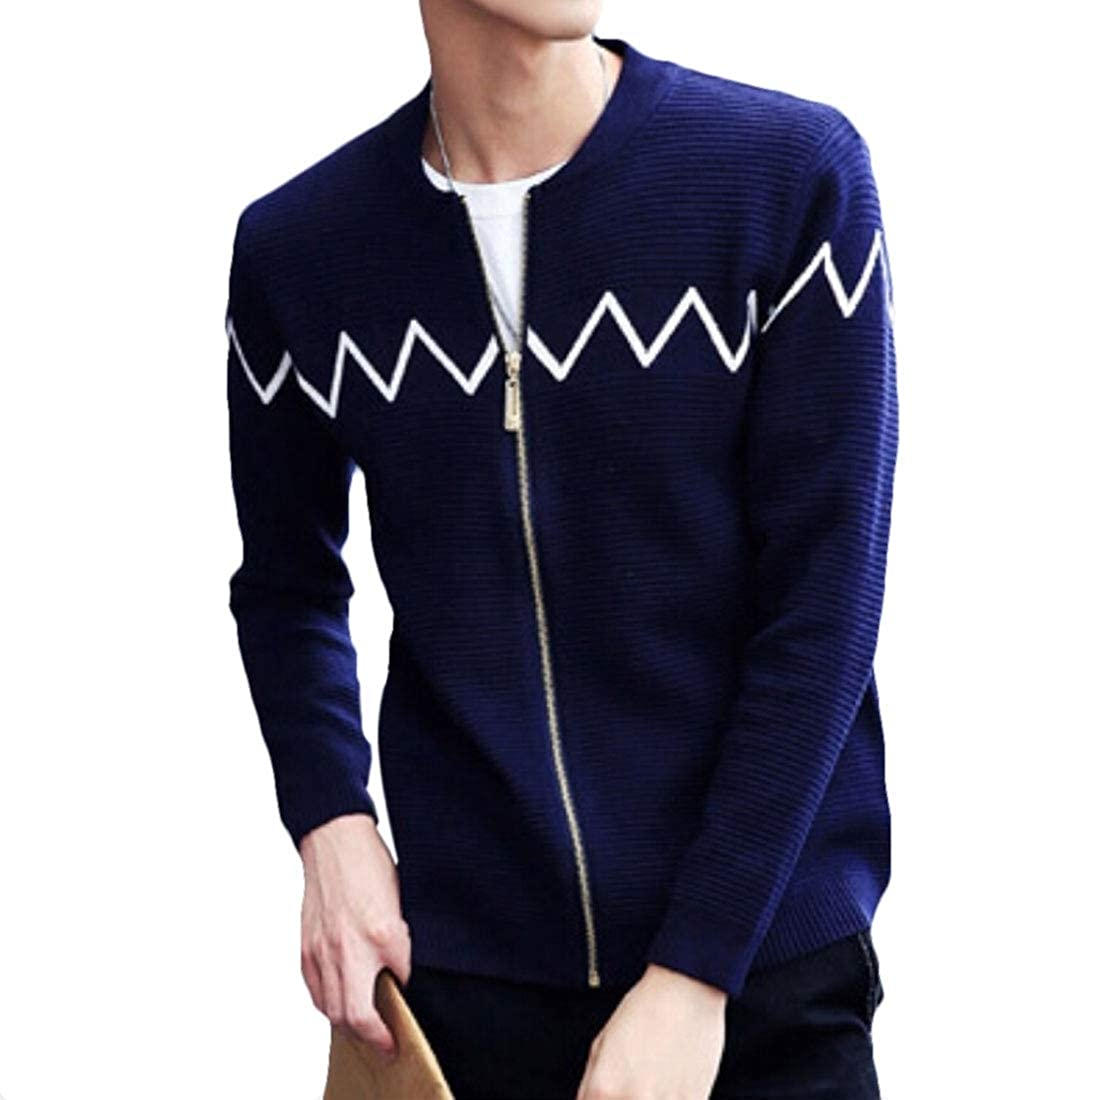 Keaac Mens Casual Slim Full Zip Thick Knitted Cardigans Sweaters